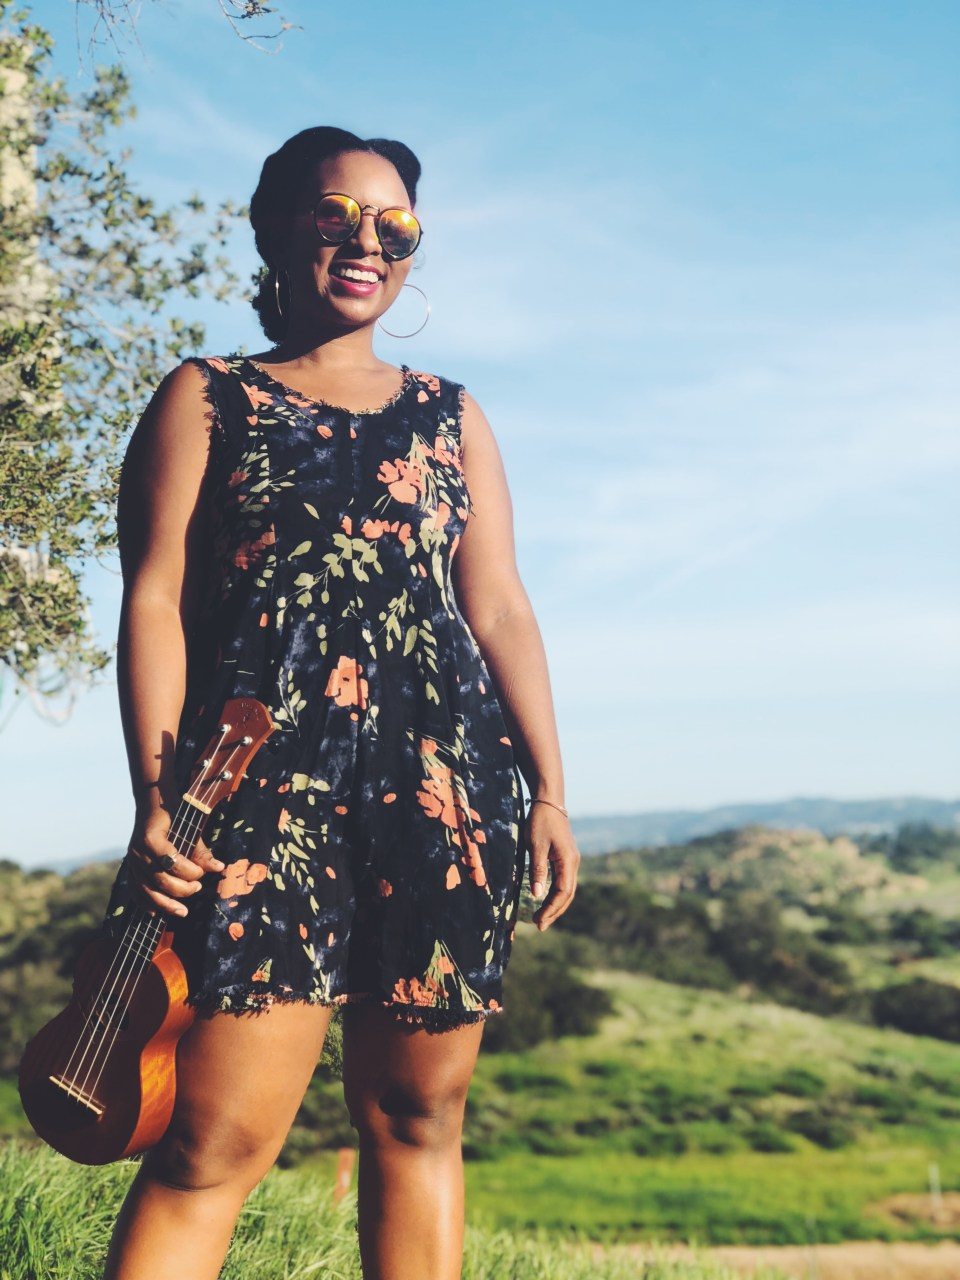 Learn how this lifestyle blogger stopped hiding her many passions and started sharing her gifts with the world.